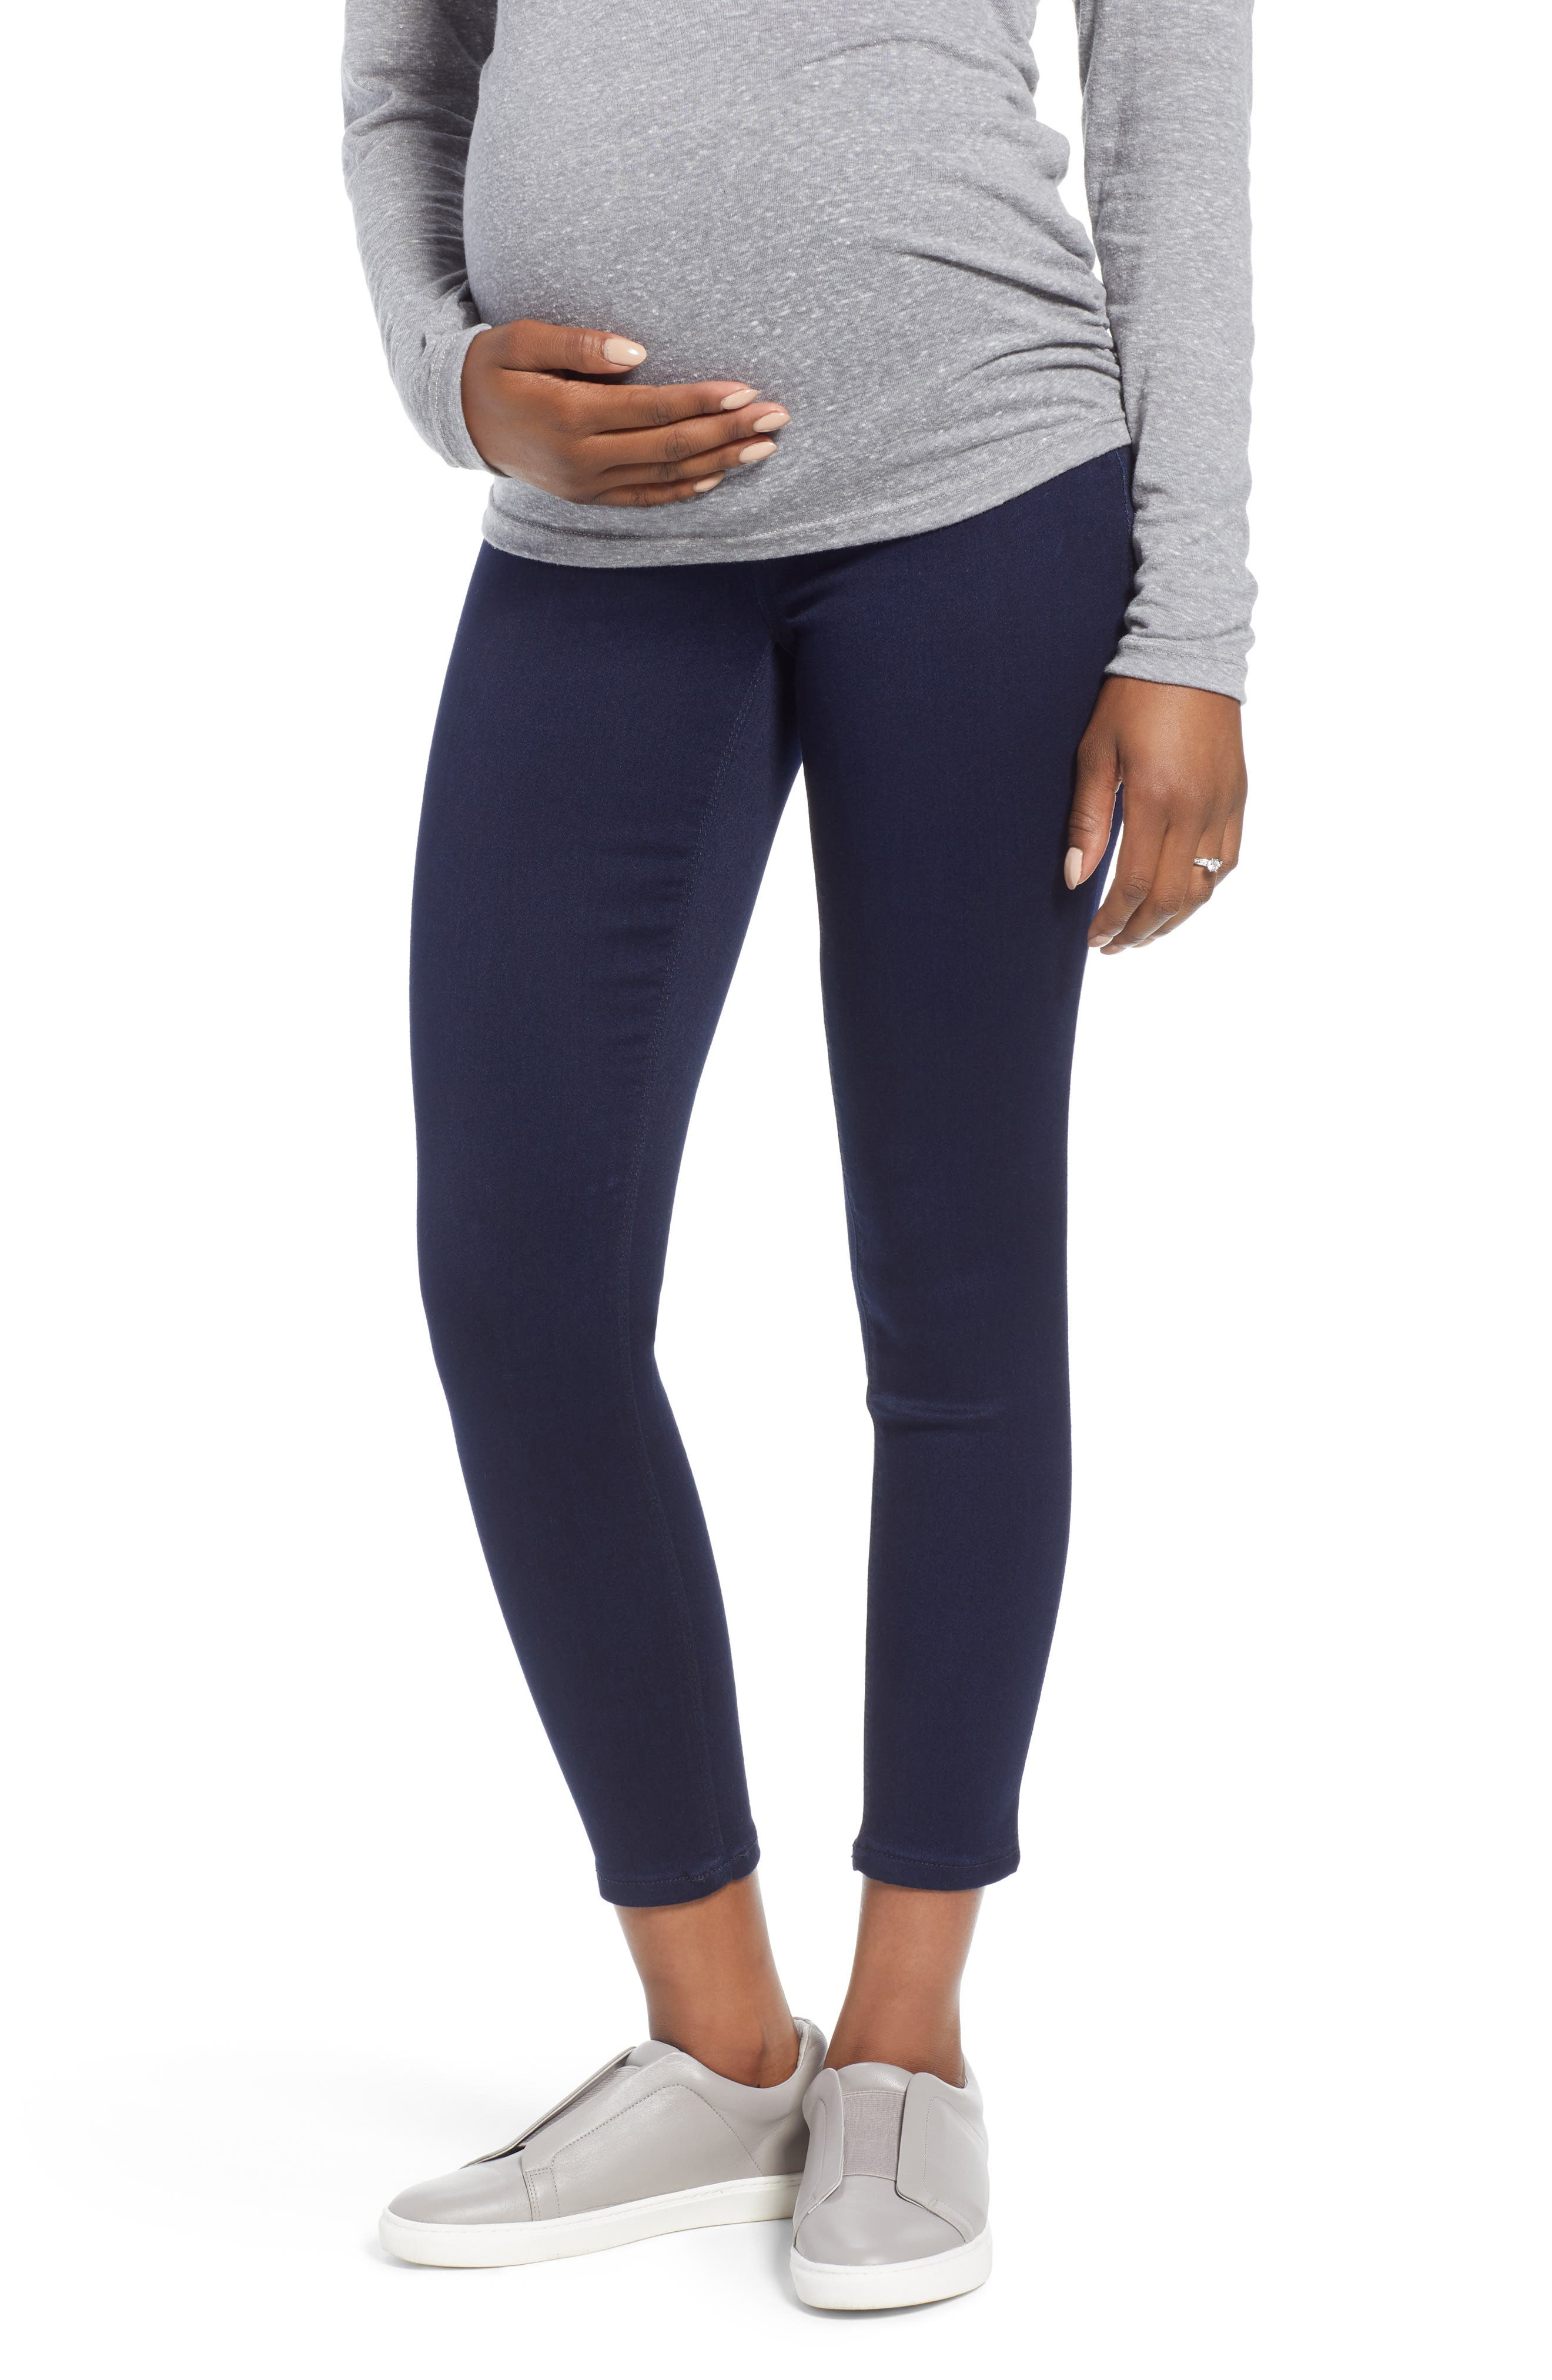 Women's 1822 Denim Butter Ankle Super Skinny Maternity Jeans